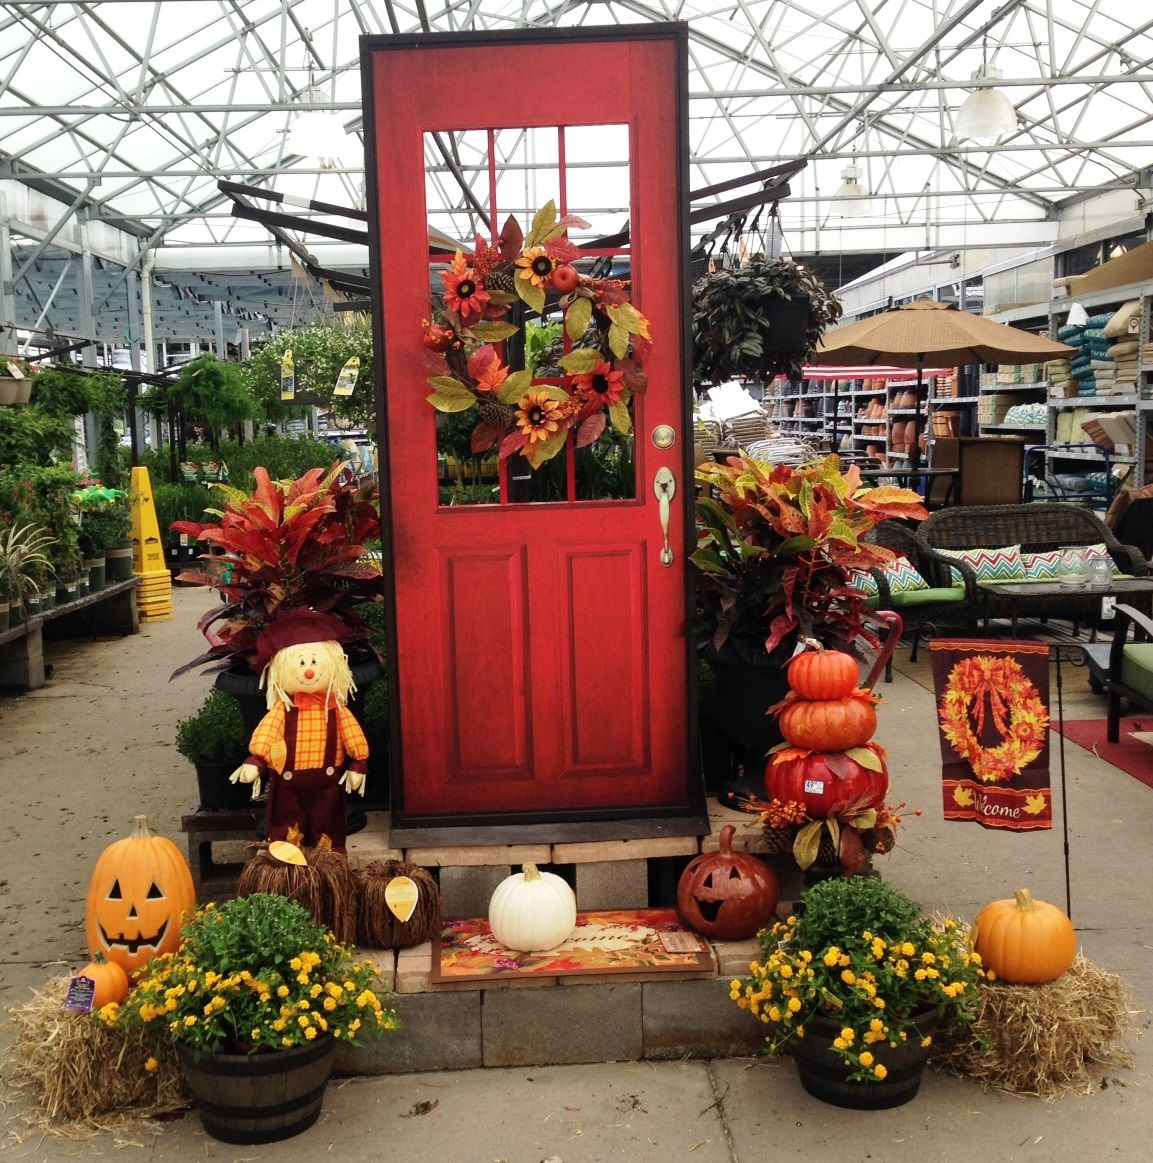 lowes garden center flowers. welcome home door fall display in rockwall tx lowes garden center flowers